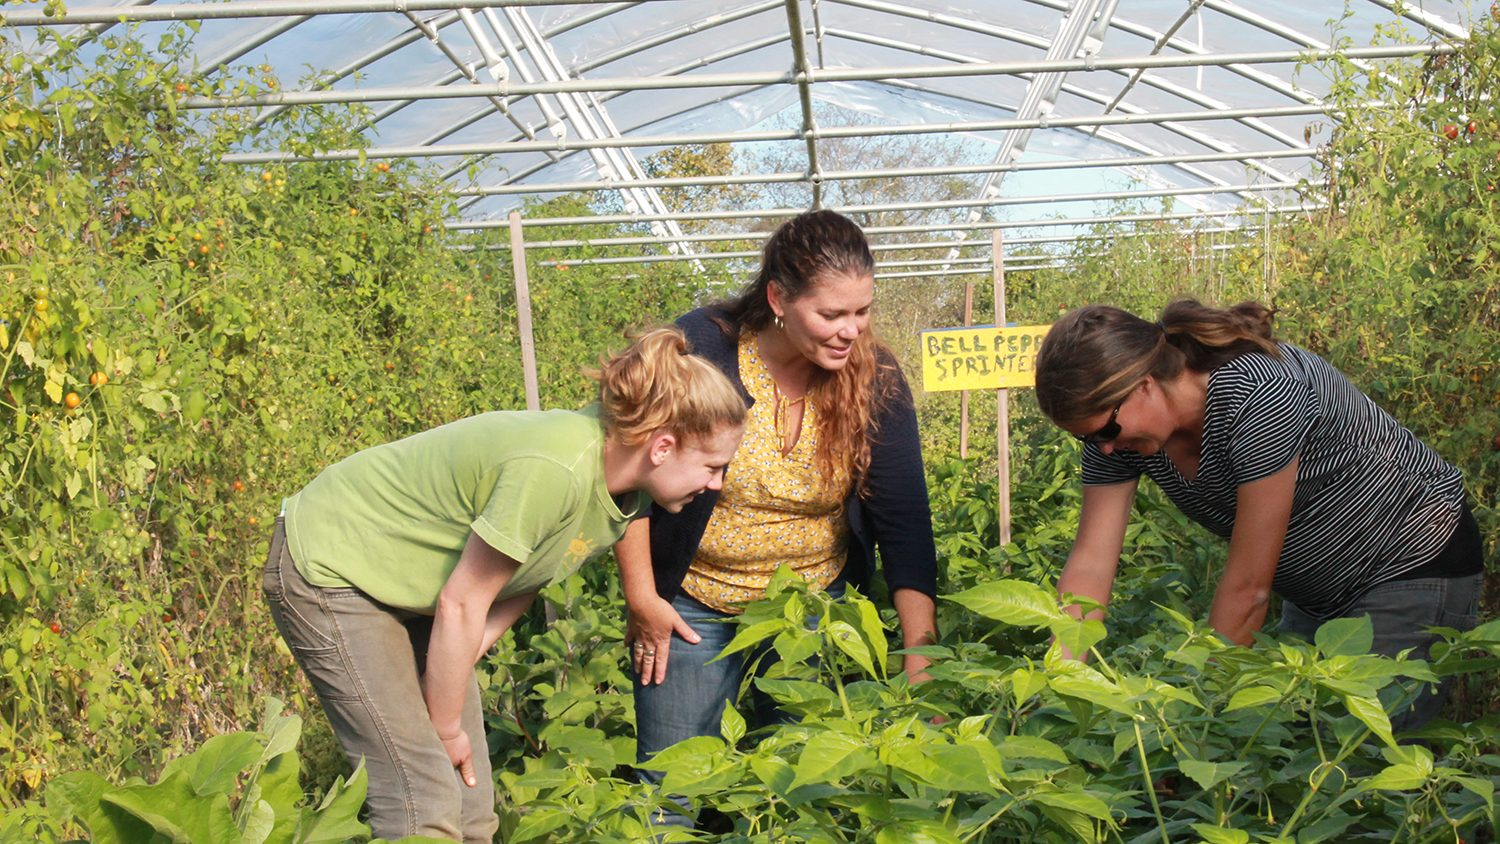 Three women looking at plants in the hoop house.